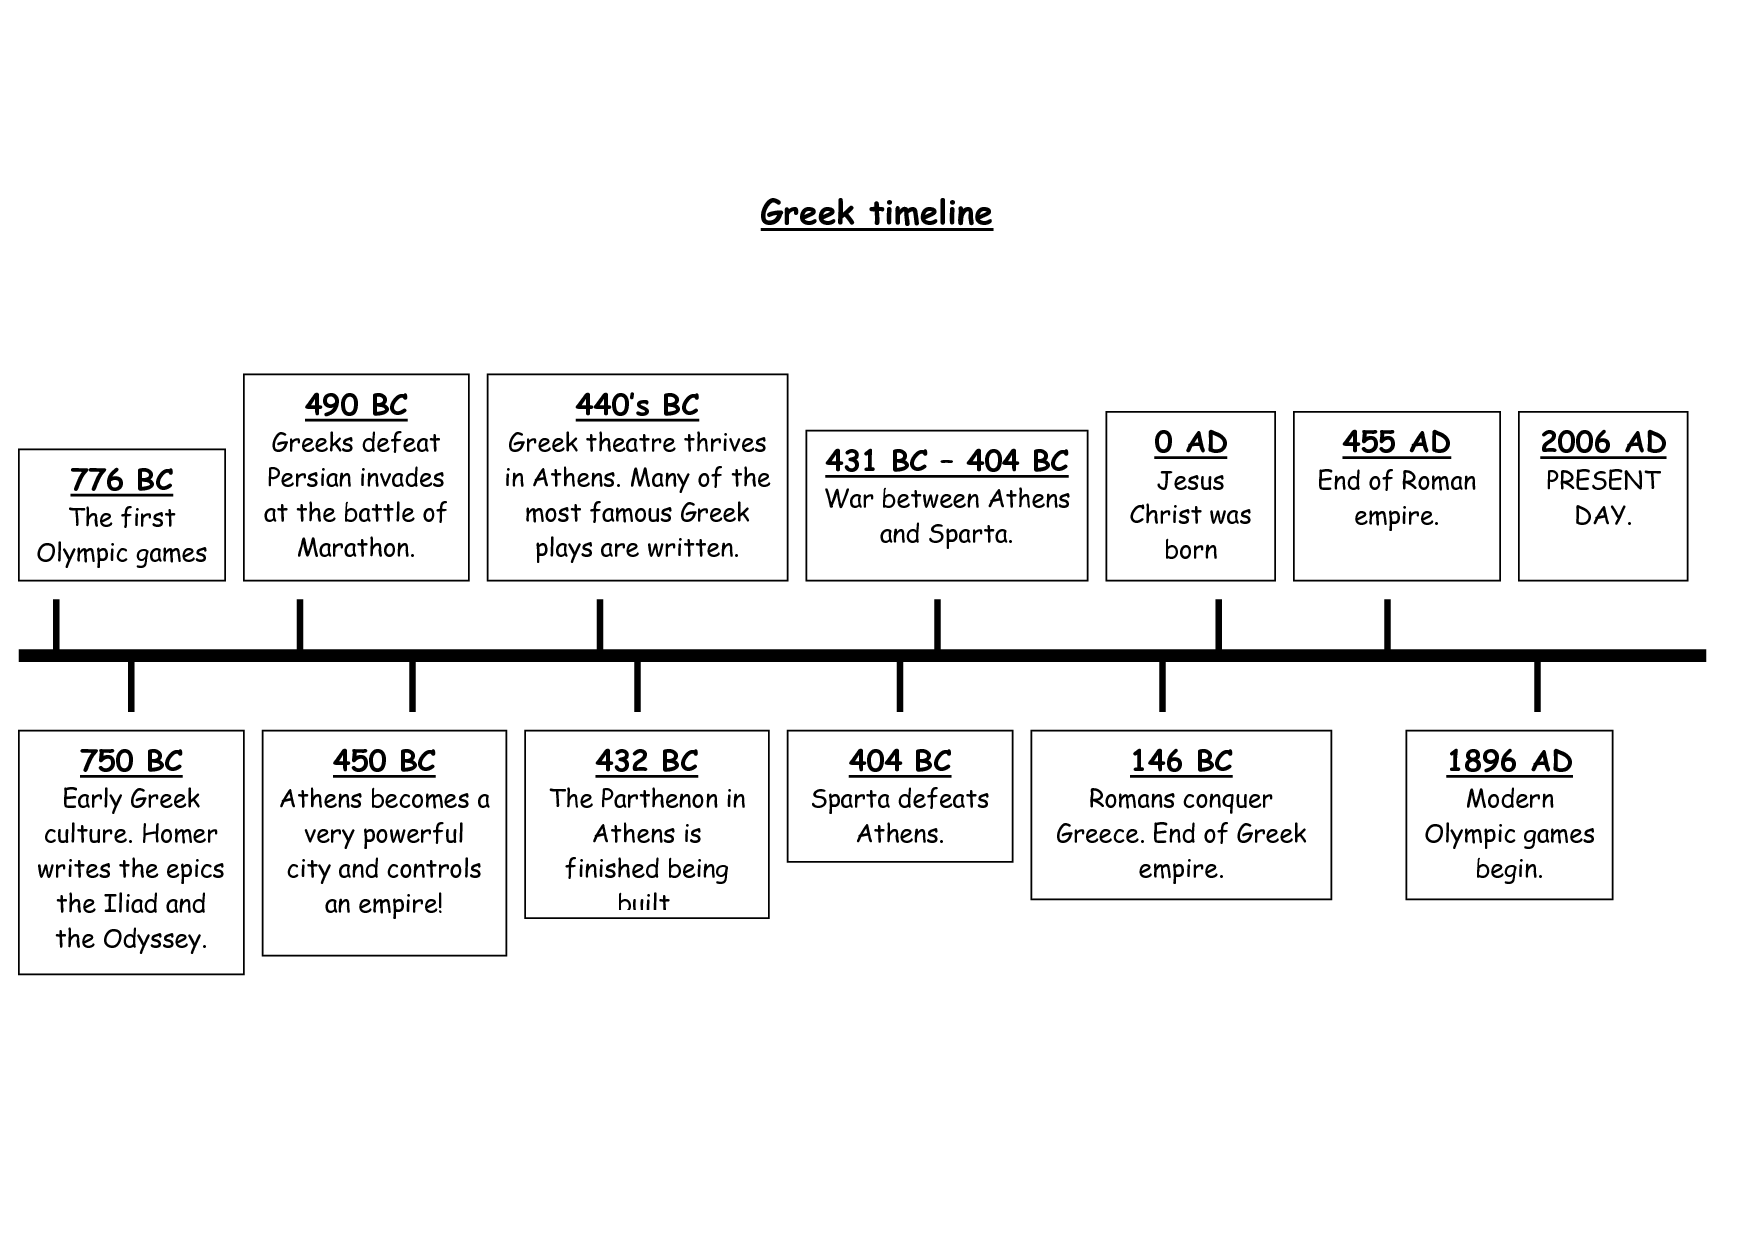 ancient timeline png times ideas for th grade ancient timeline png 1754times1240